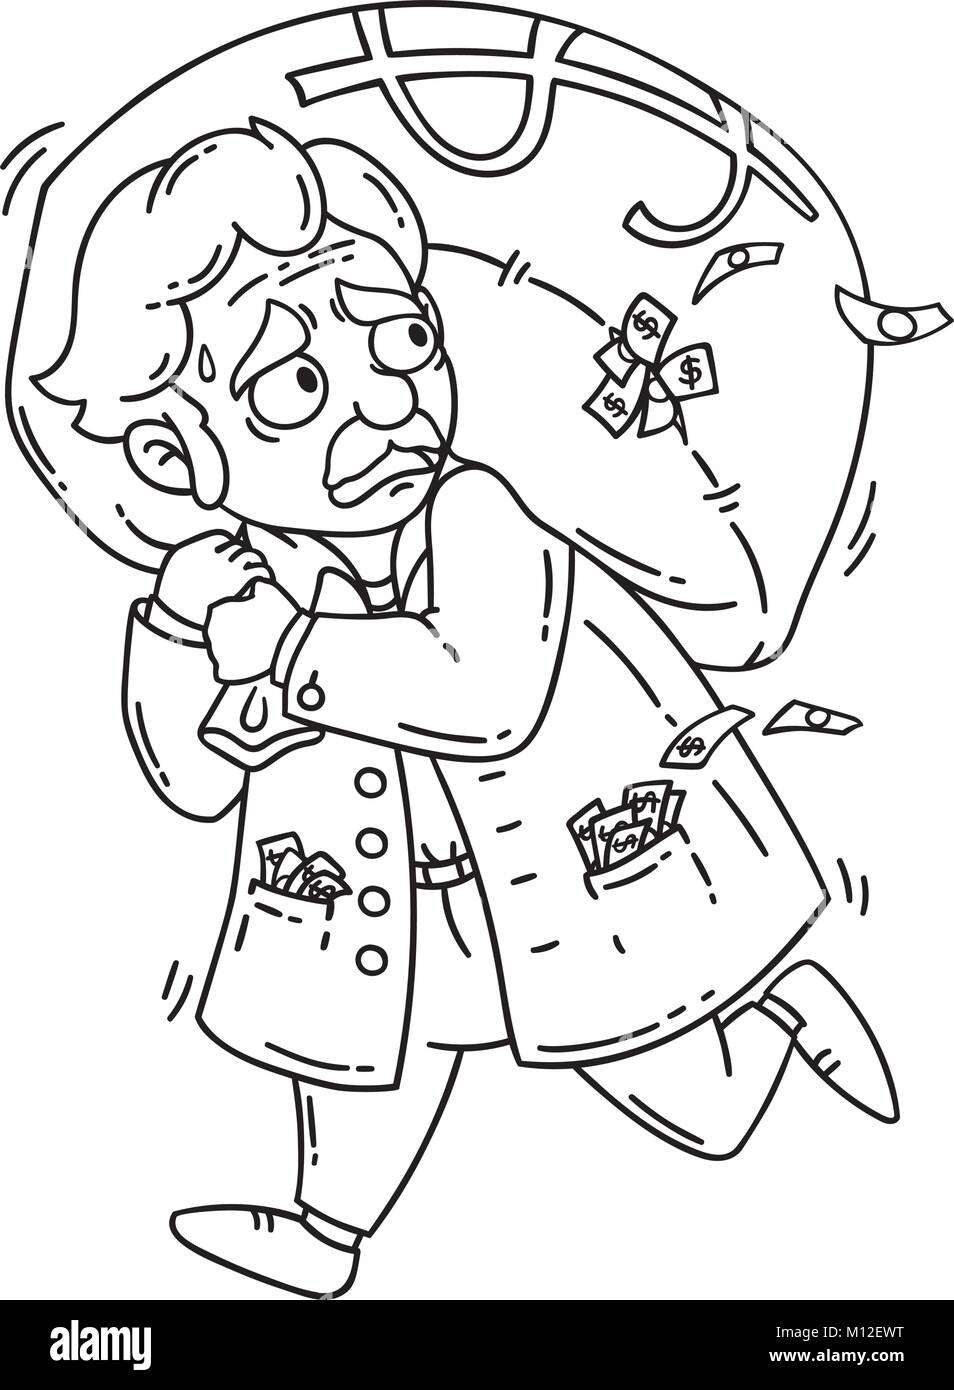 Cartoon Objects Coloring Page Stockfotos & Cartoon Objects Coloring ...